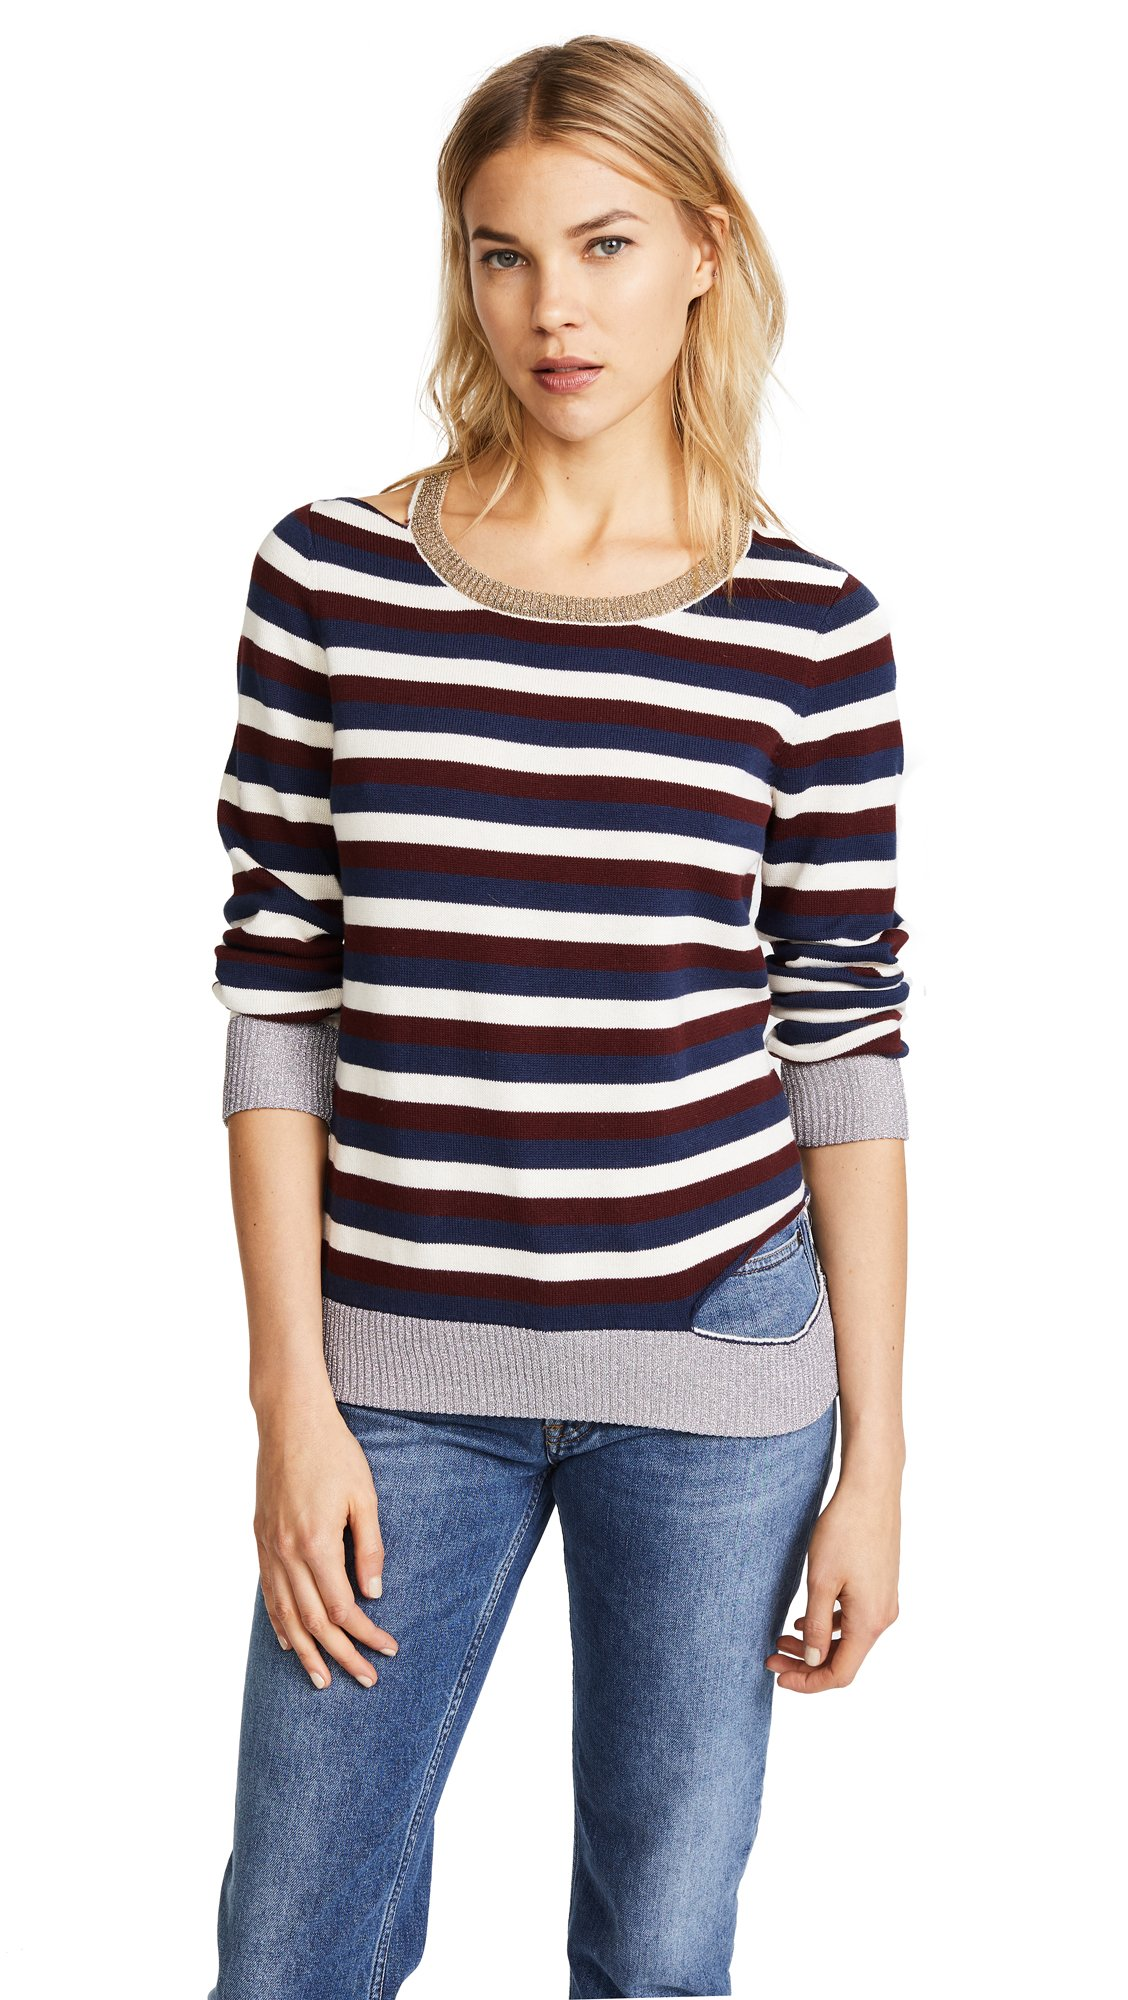 Chaser Women's Deconstructed Striped Sweater, Multi, Small